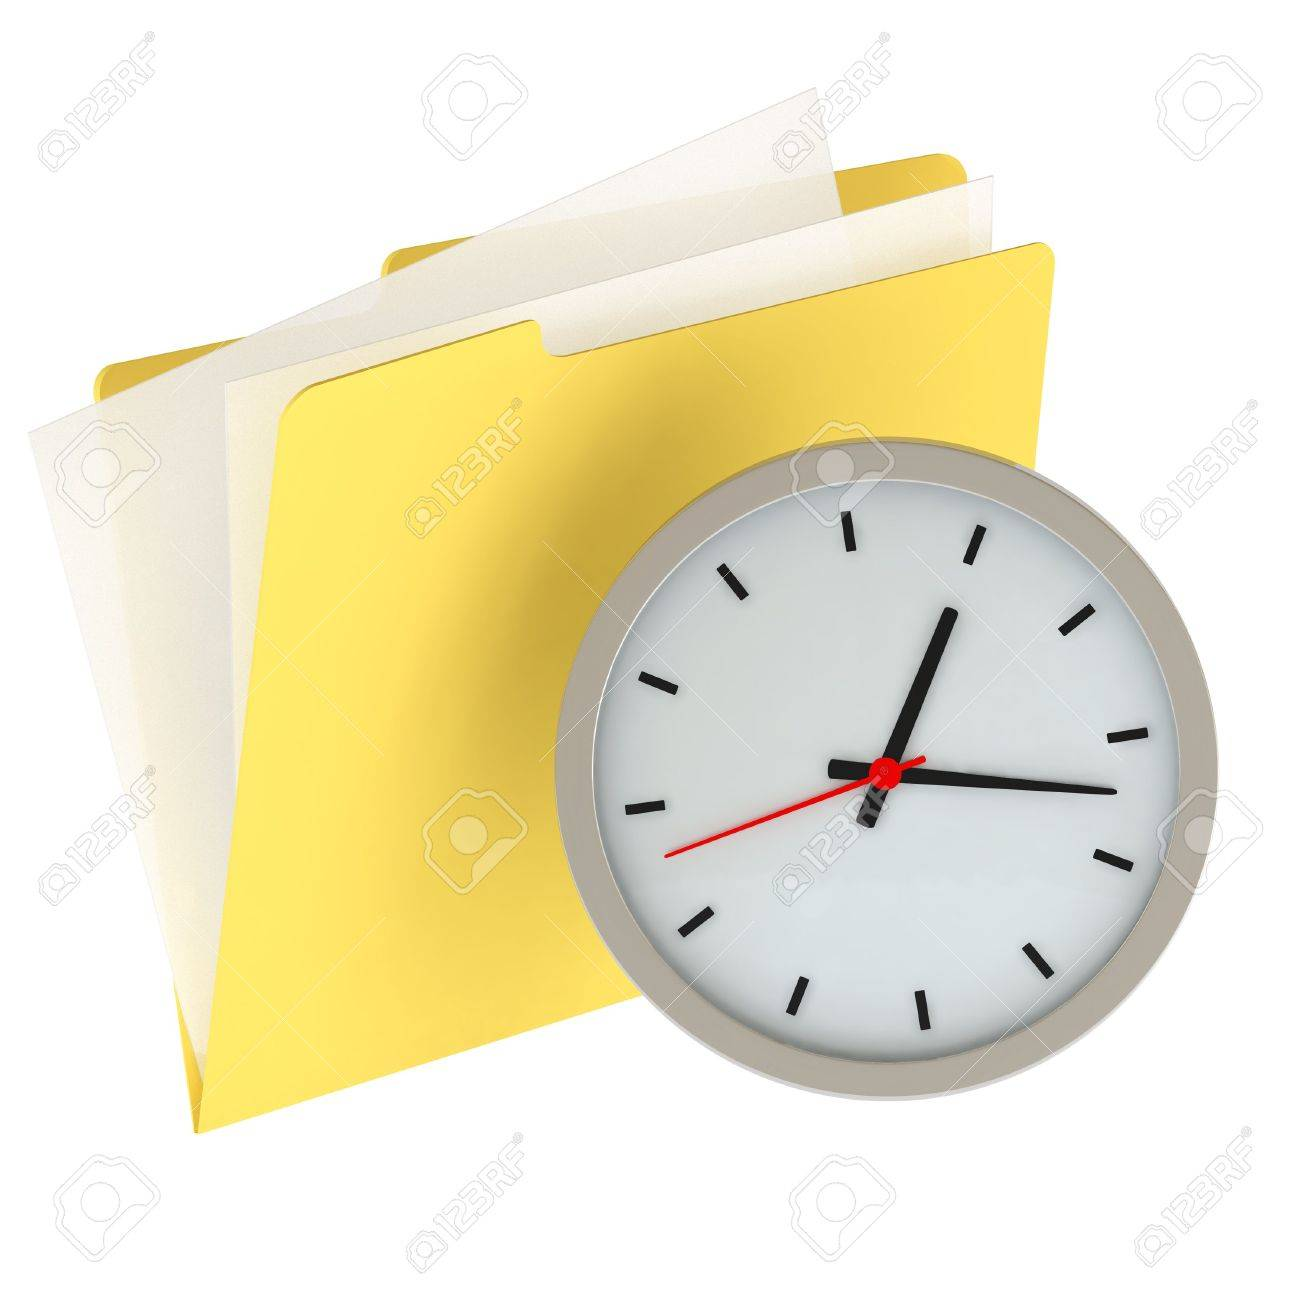 Folder icon with clock isolated over a white background. This is a 3D rendered picture. Stock Photo - 860742